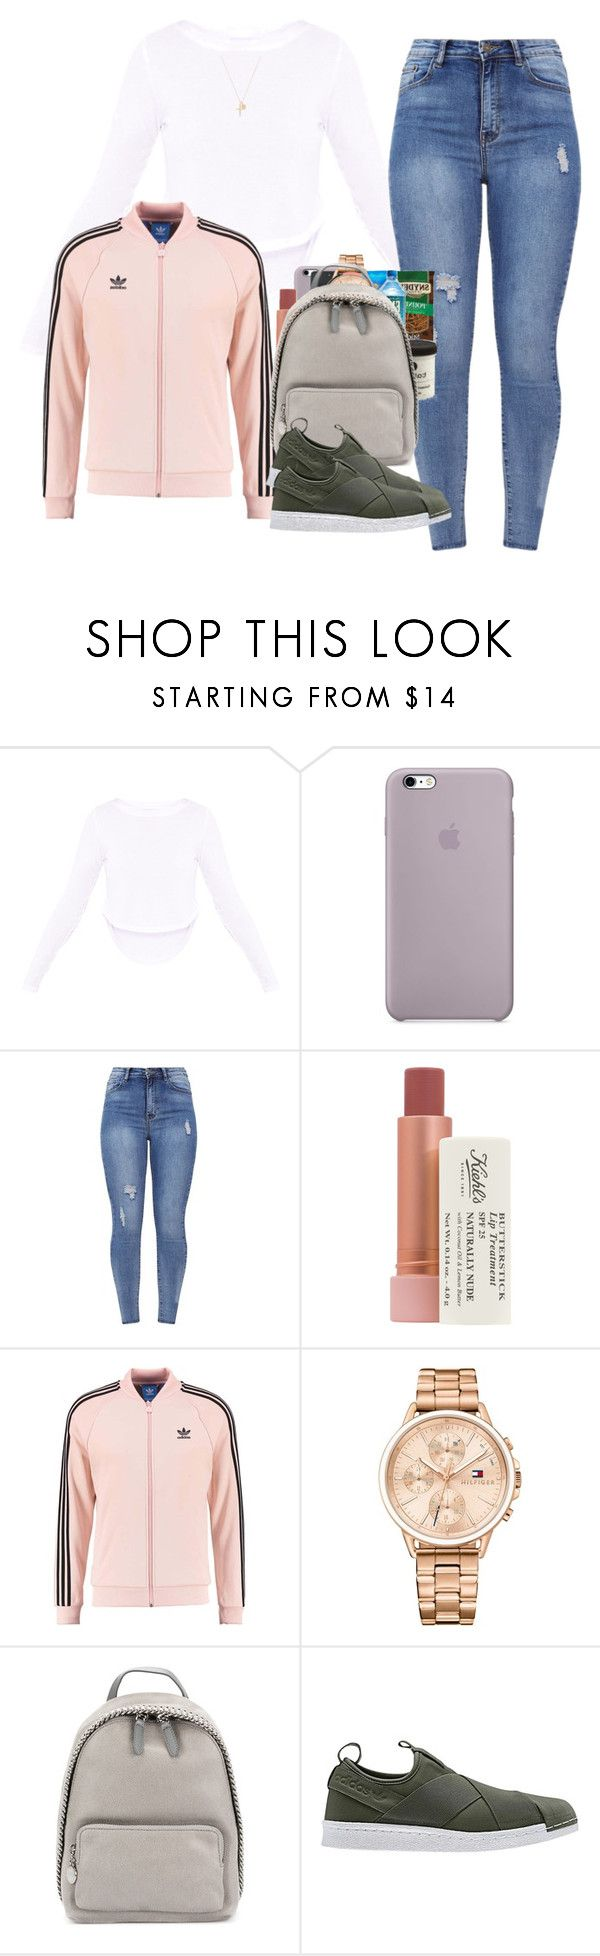 """""""Untitled #310"""" by champagnayegang ❤ liked on Polyvore featuring Kiehl's, adidas Originals, Tommy Hilfiger, STELLA McCARTNEY, adidas and Joolz by Martha Calvo"""